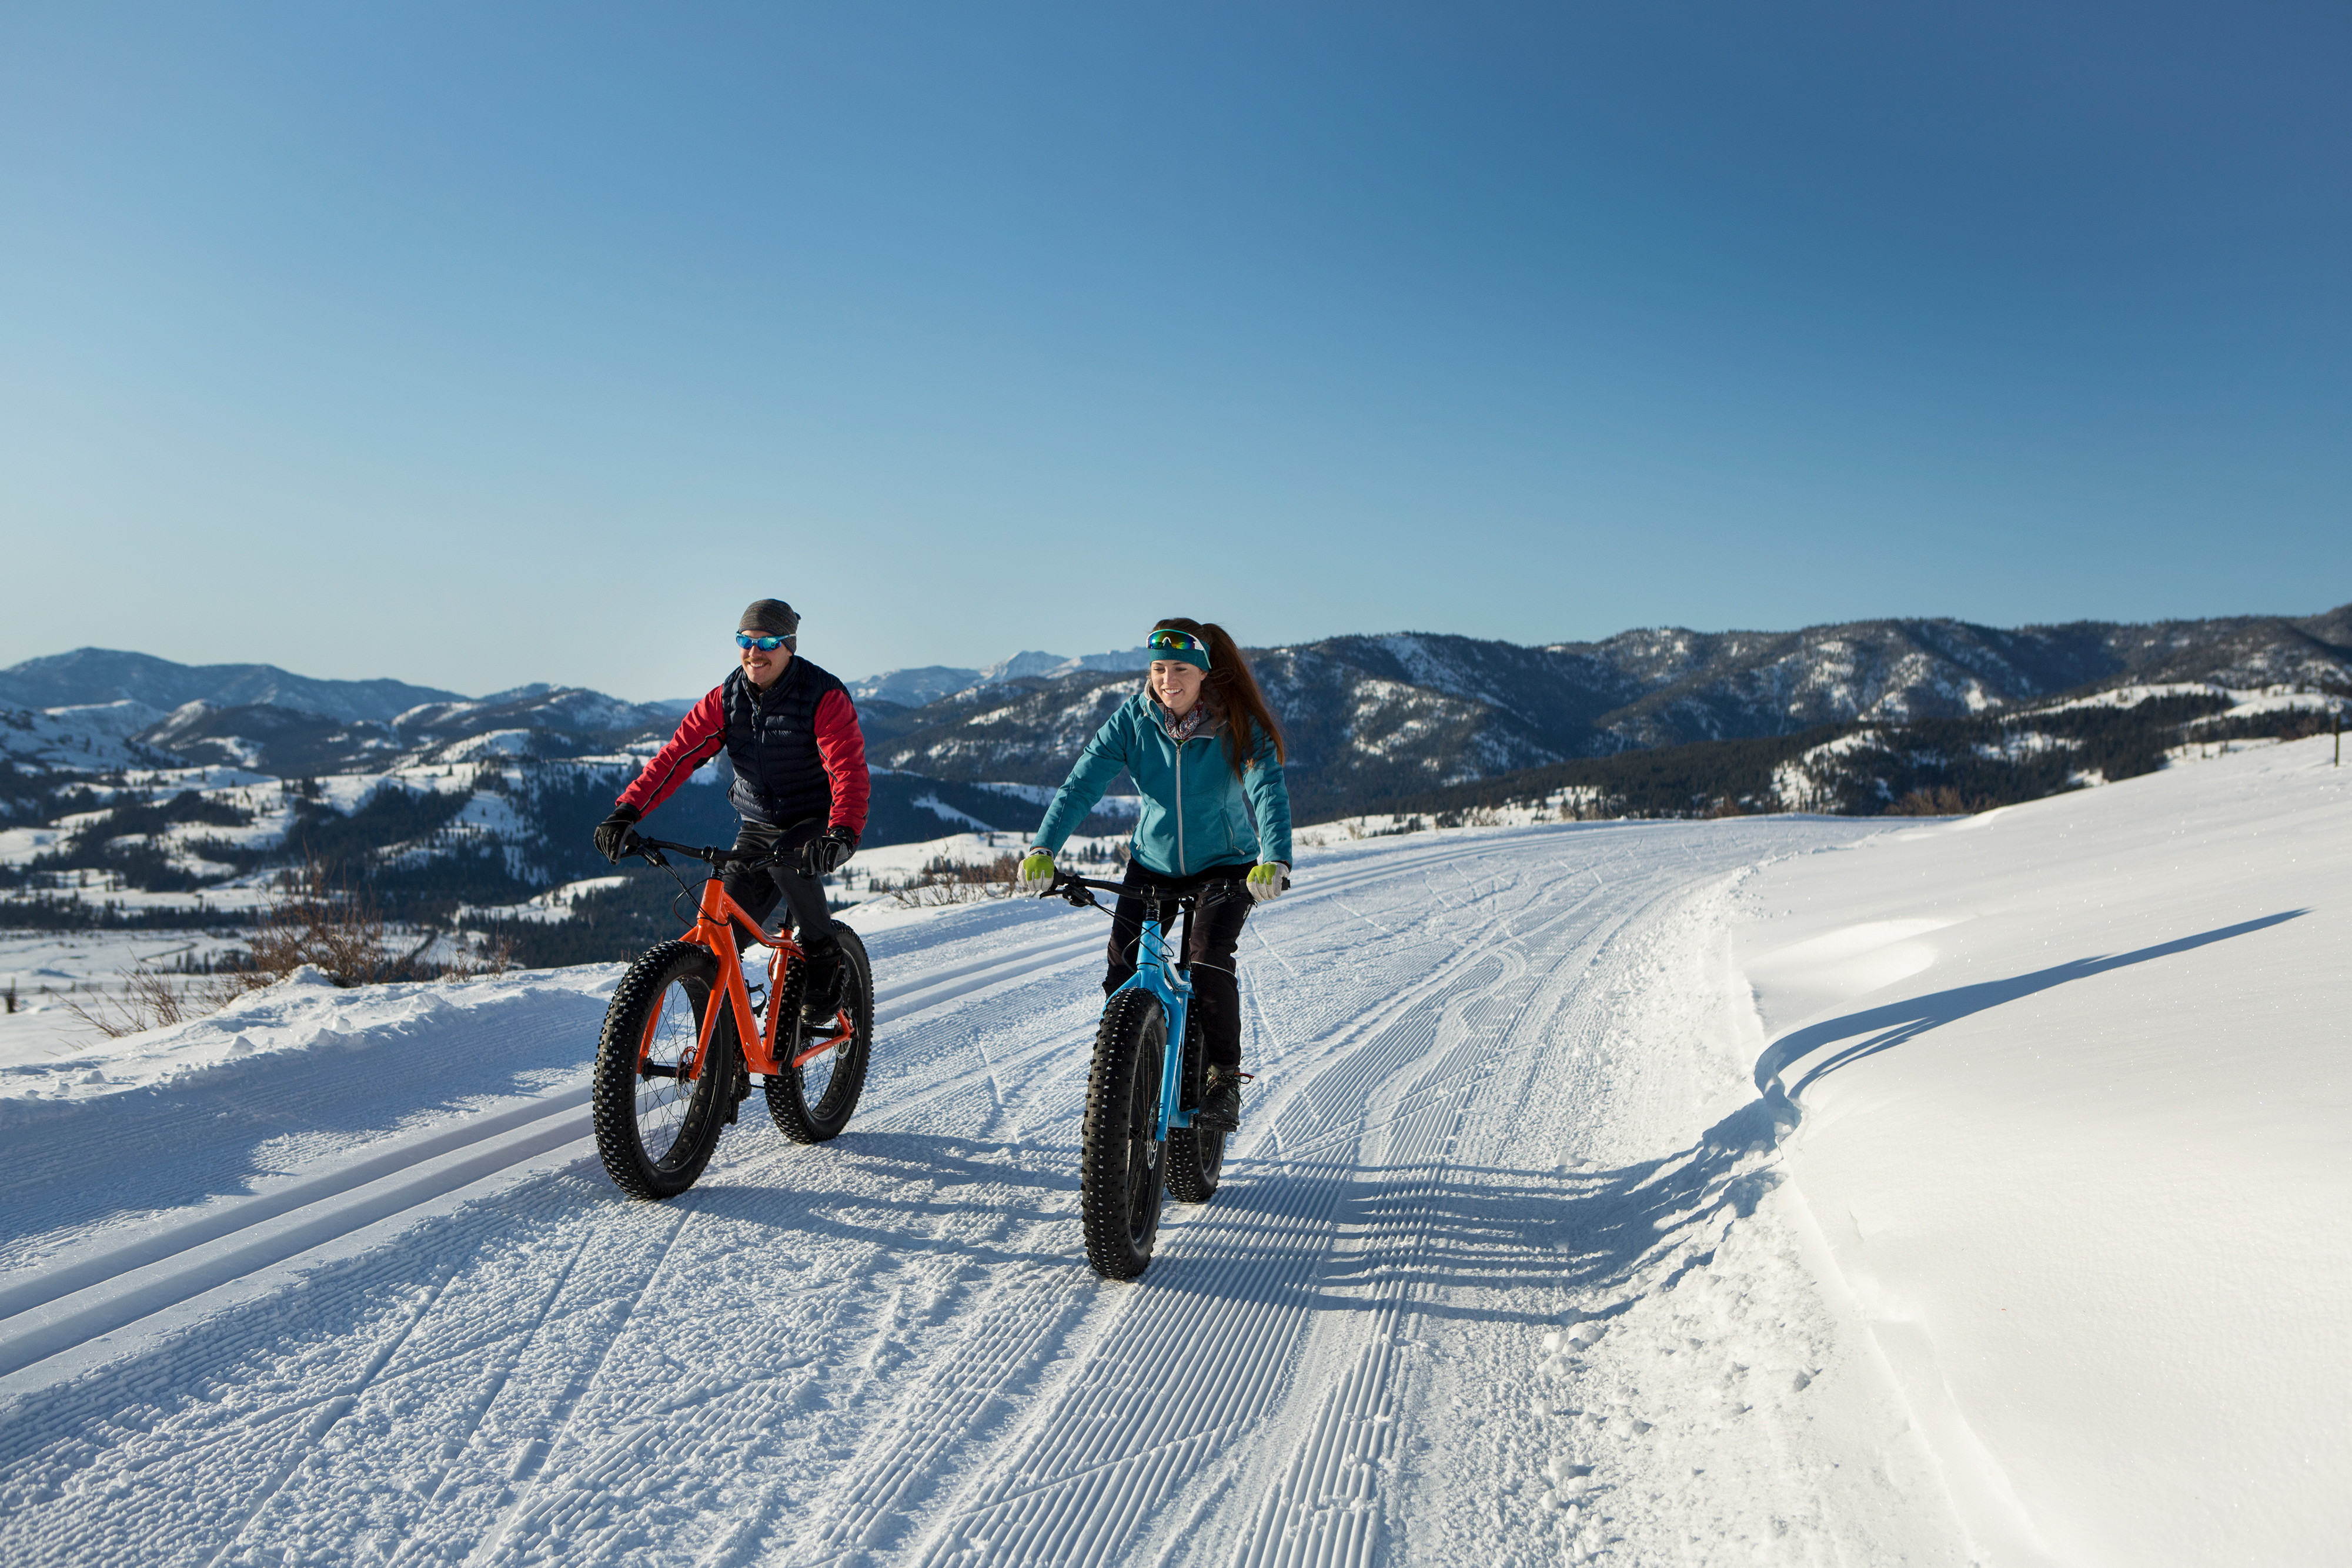 Reviews for our Park City, Utah Hotel and Ski Resort | Family Fun in Park City